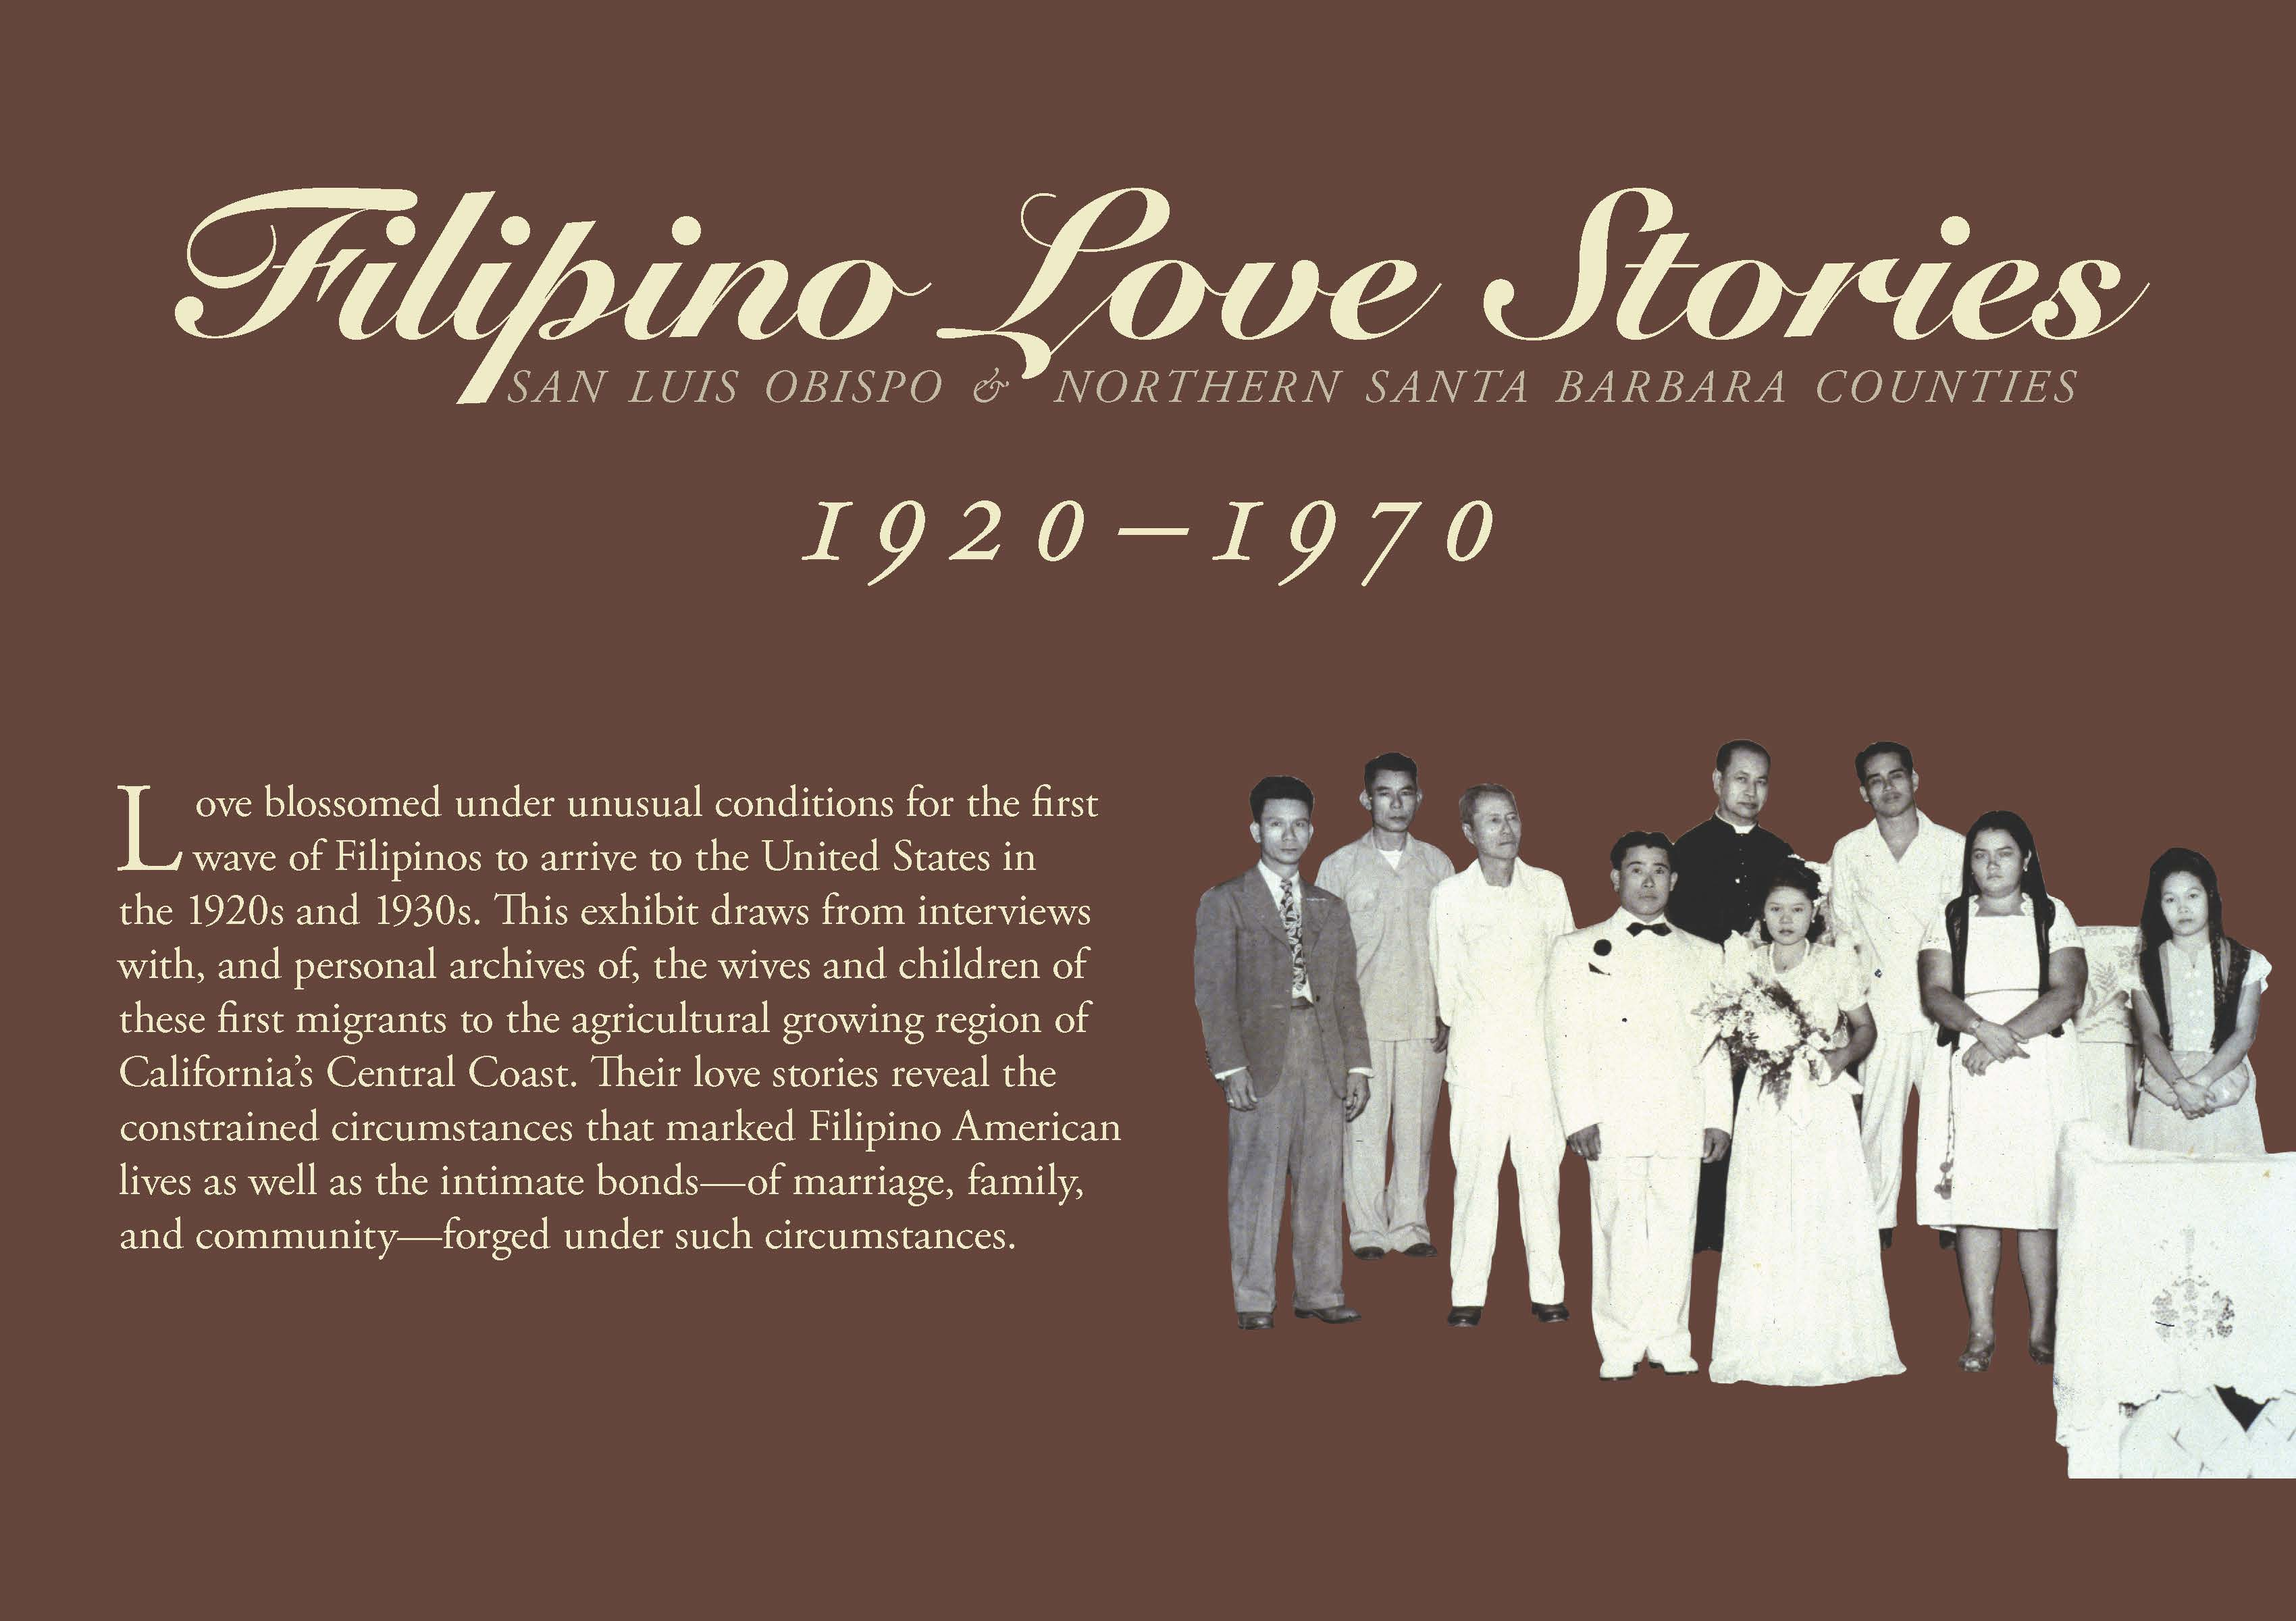 Filipino Love Stories homepage thumbnail